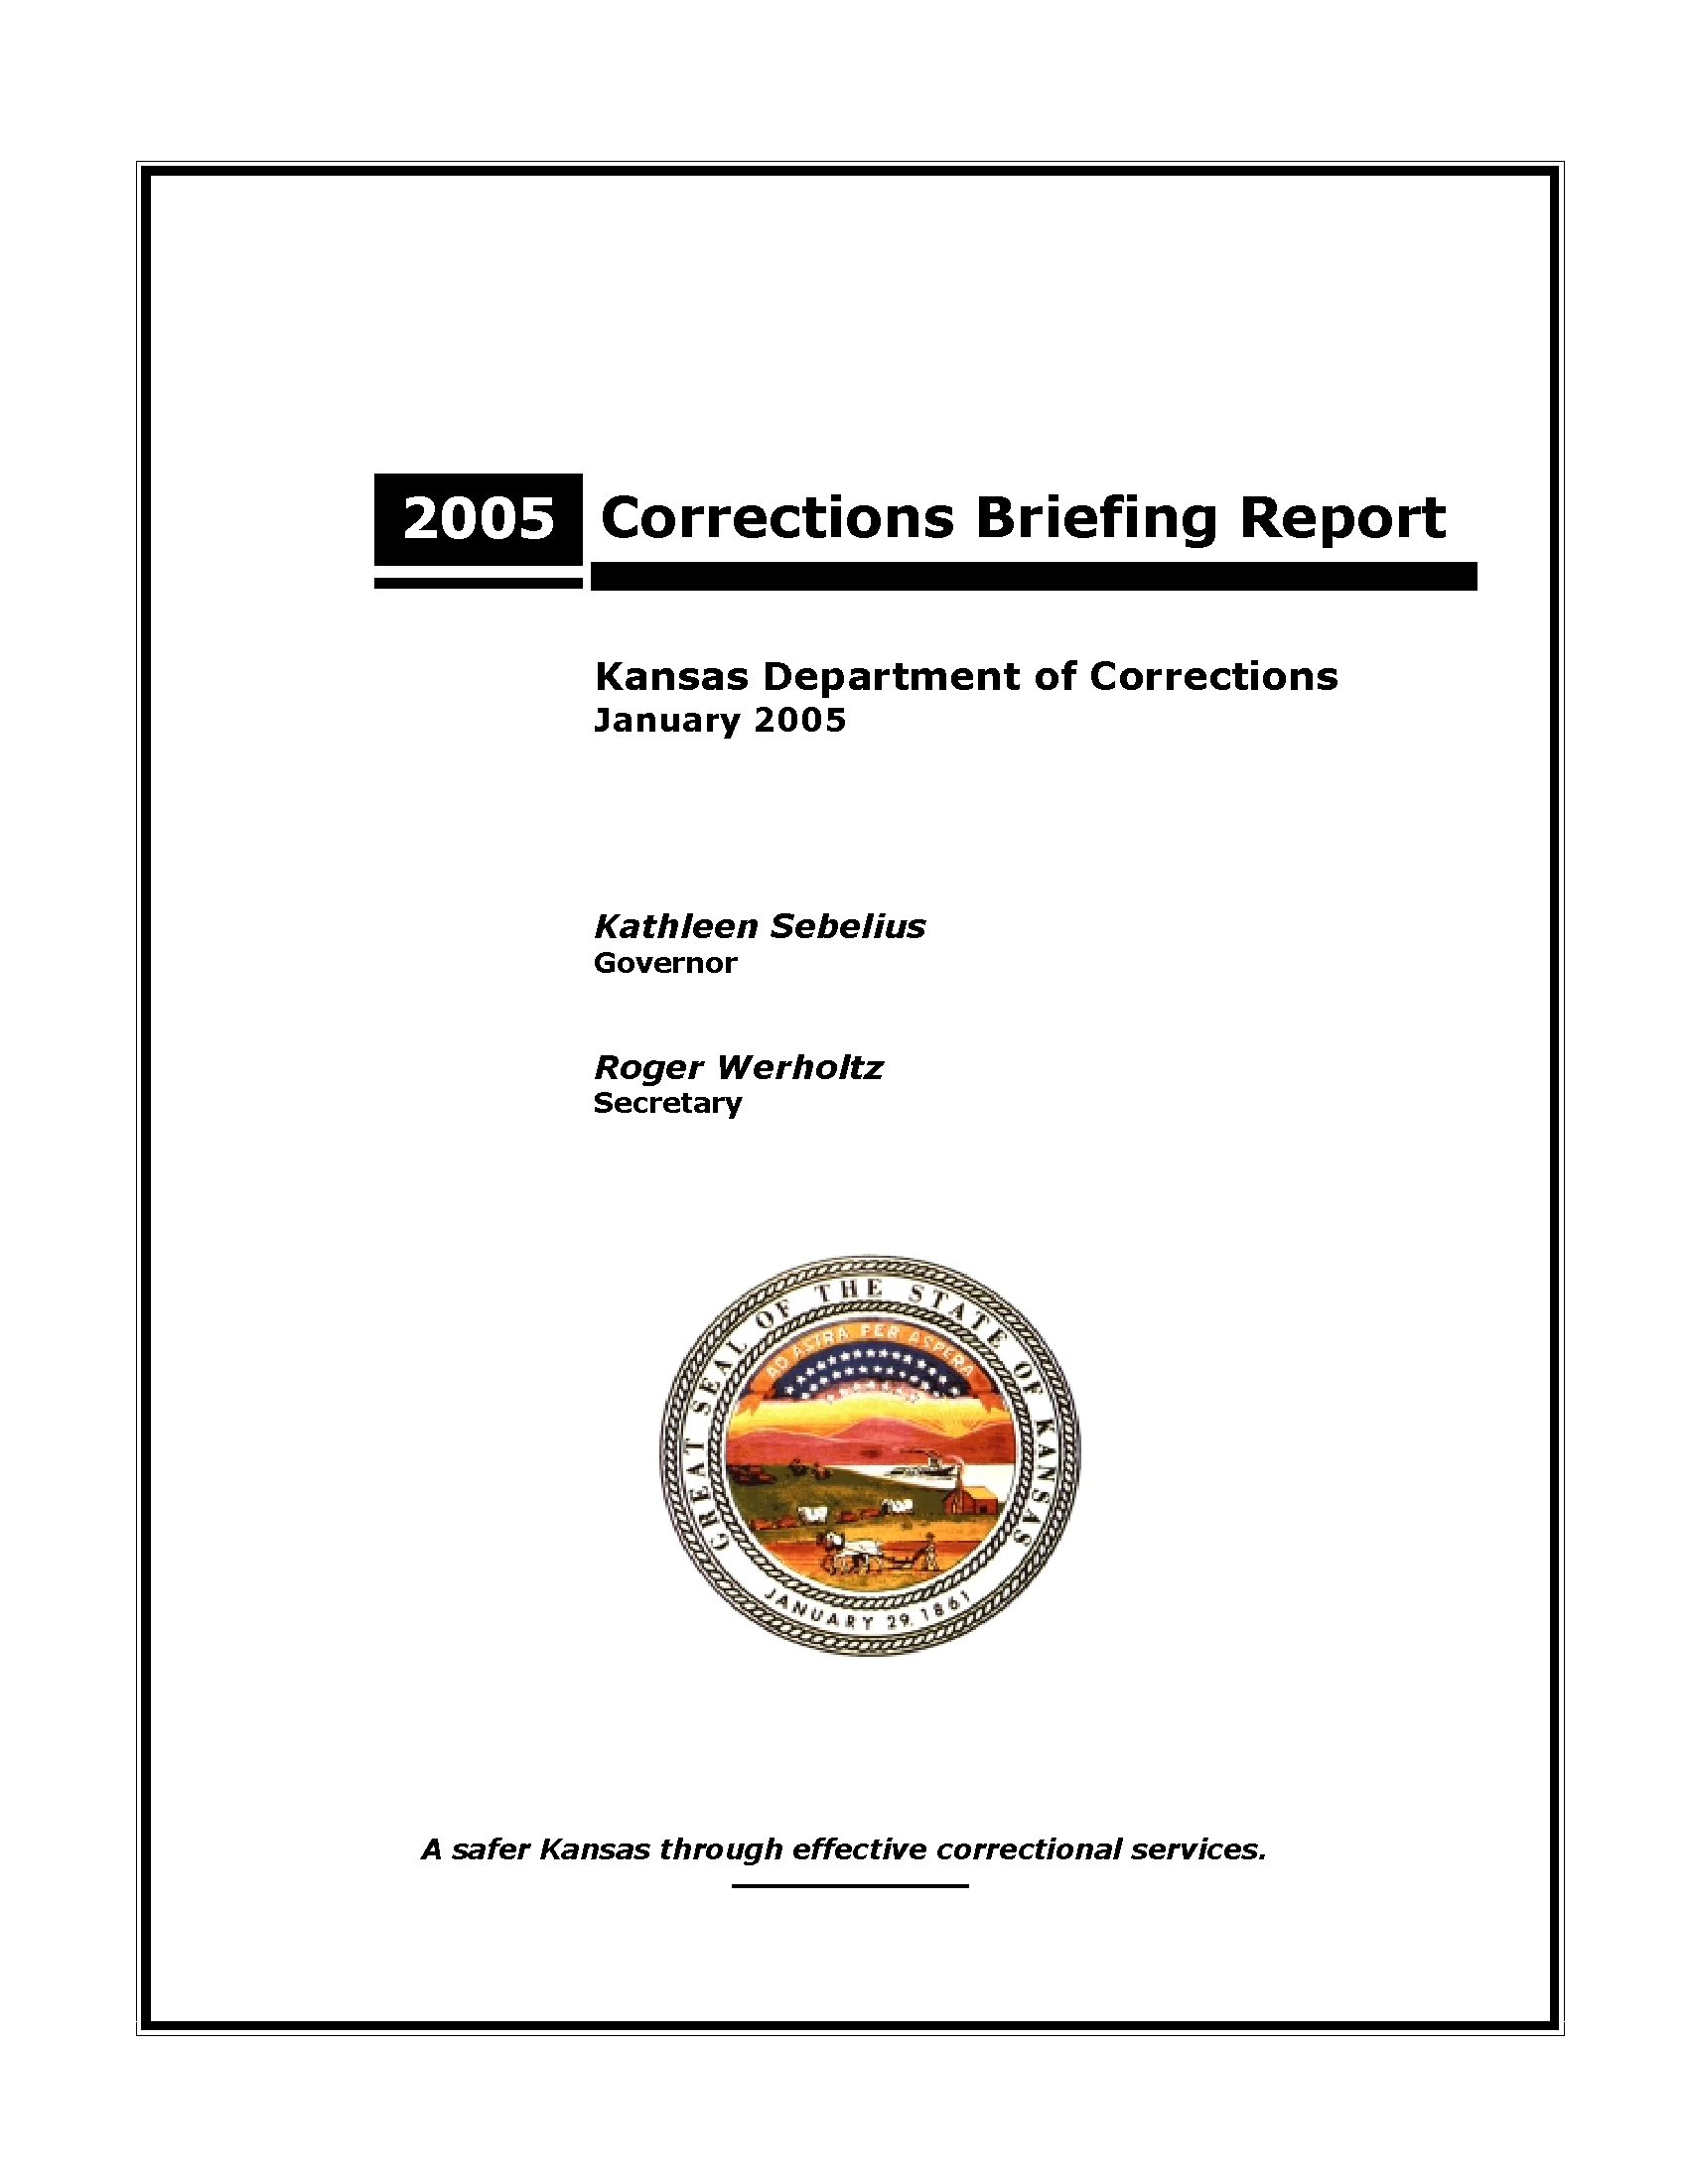 Corrections Briefing Report 2005 Kansas Department Of